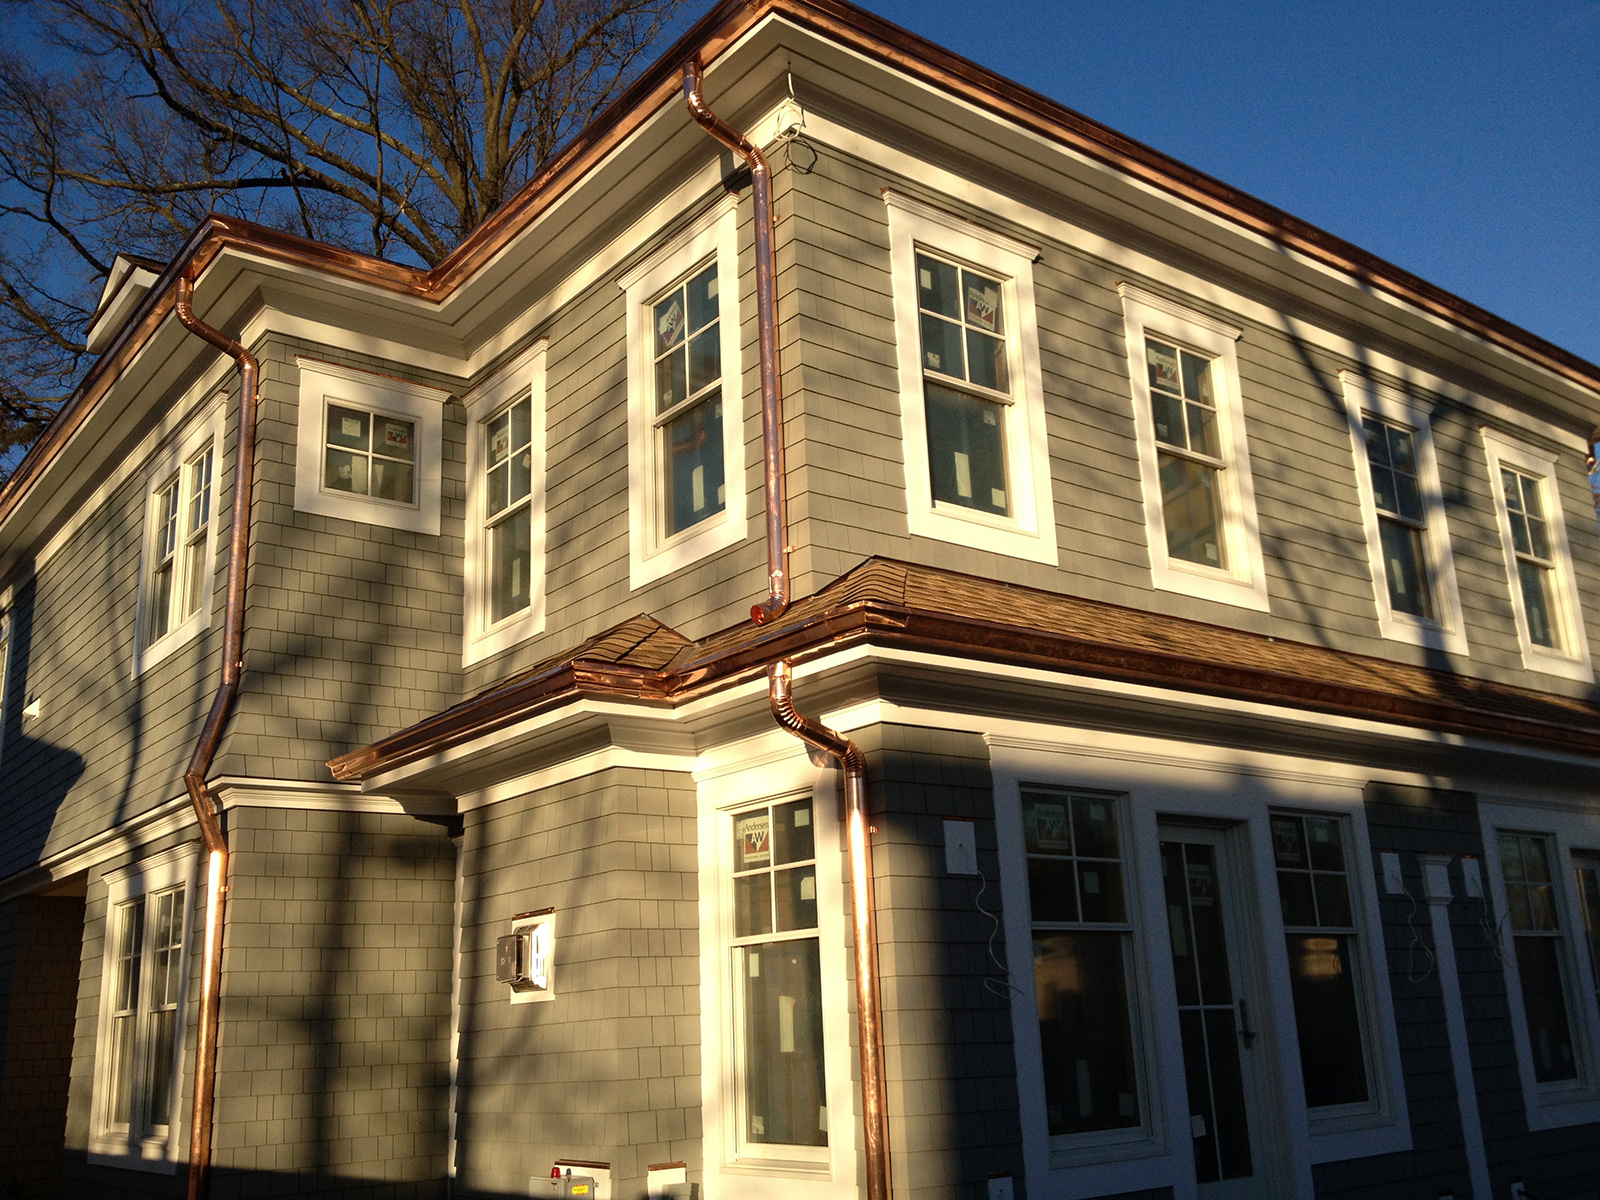 J Salavtore & Sons Roofing - Serving Bronx - Westchester NY - NYC